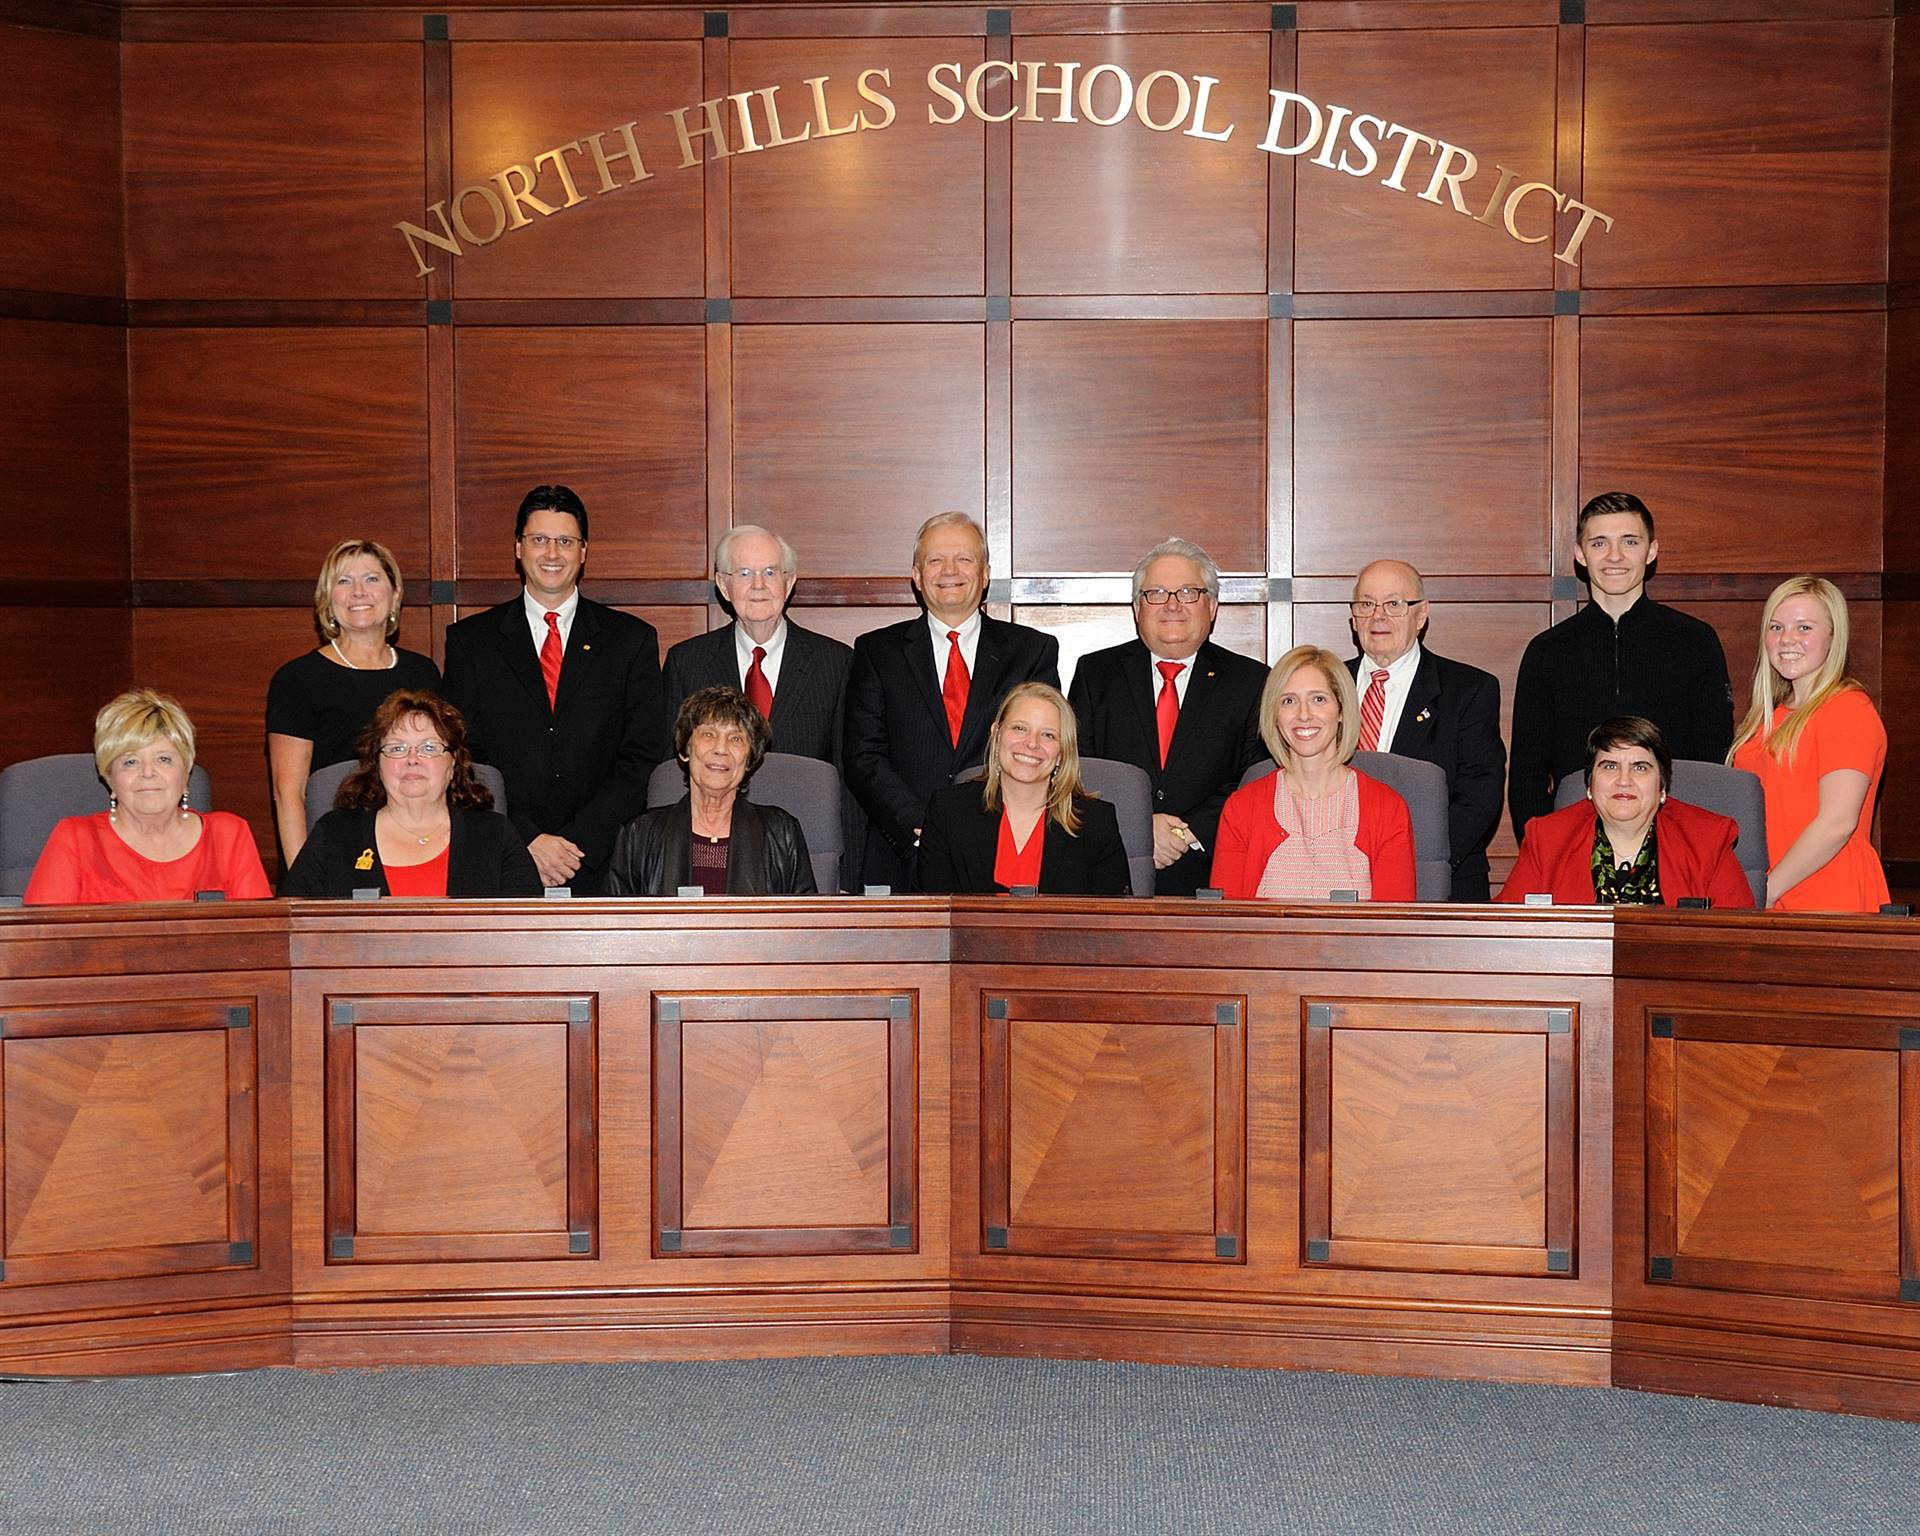 NHSD School Board Members for 2018 and Student Representatives